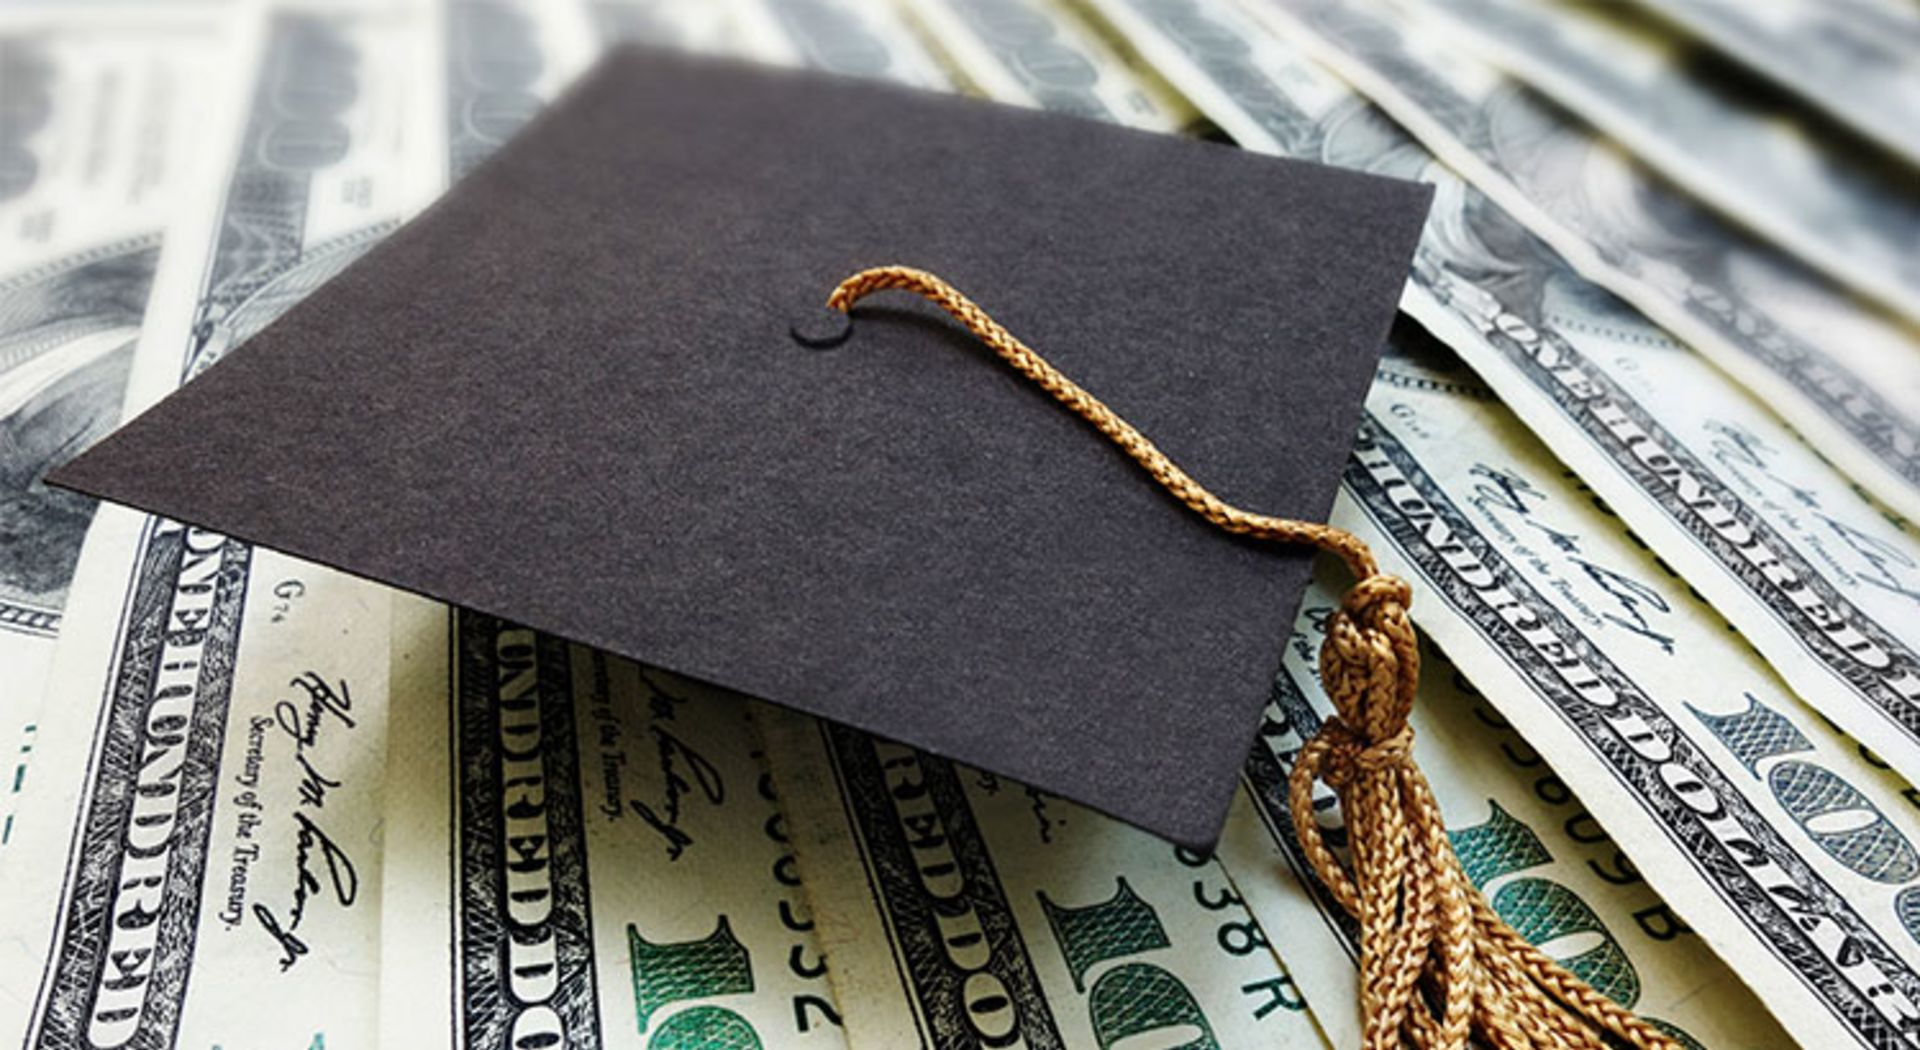 Packanack Lake Homes for sale in NJ | Is Student Loan Debt A Threat to Homeownership? No!